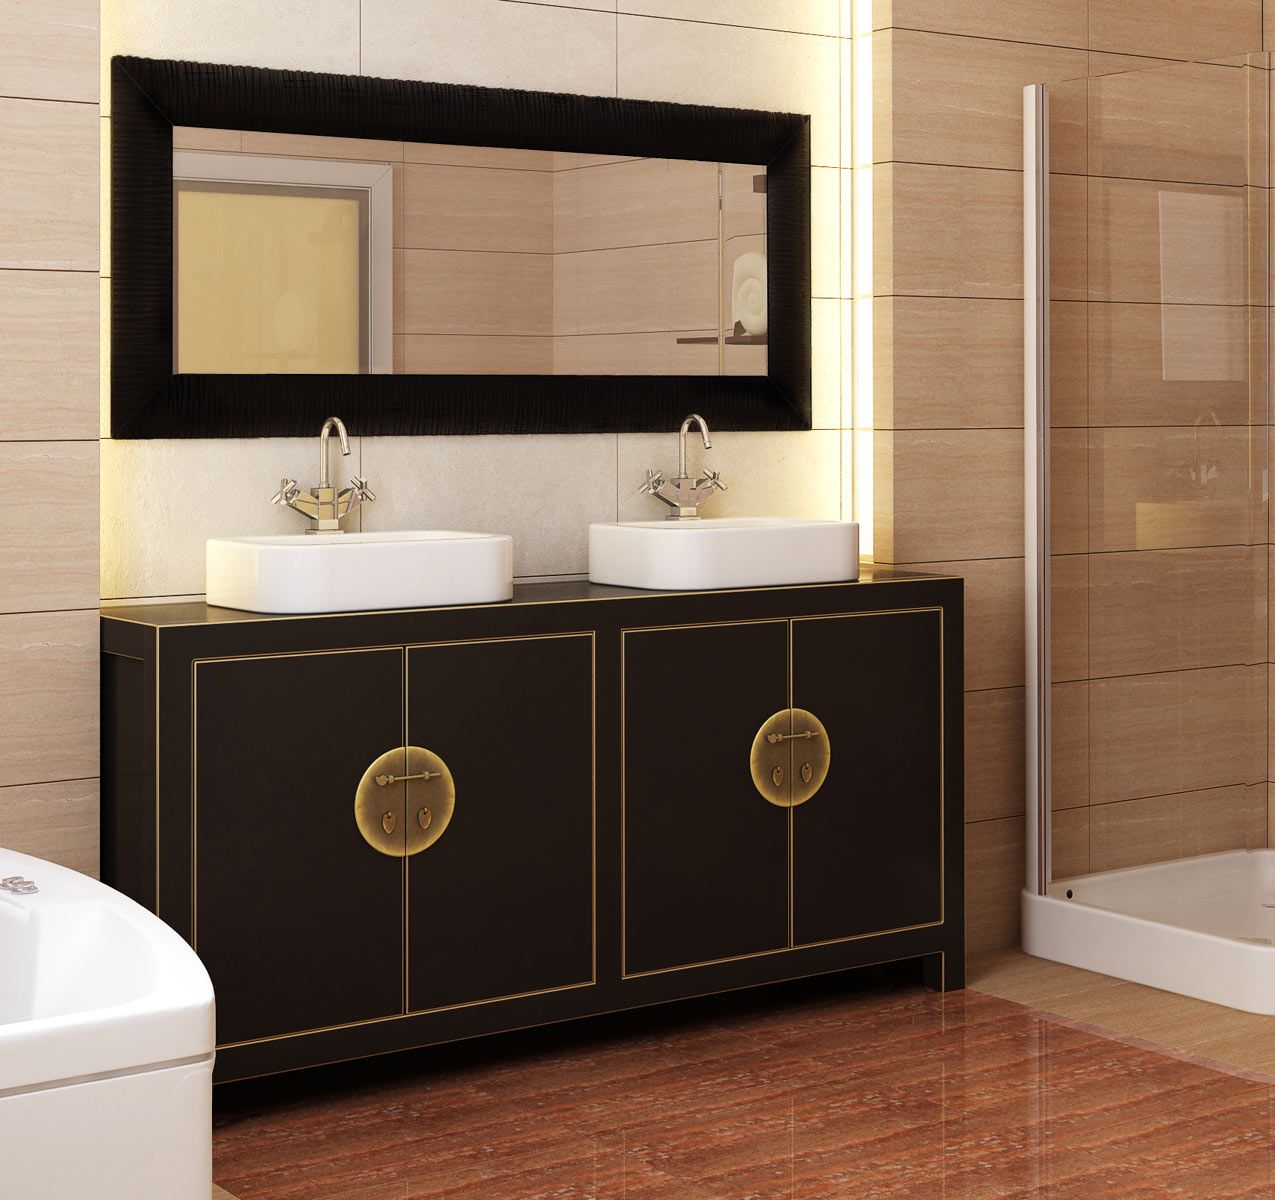 Bathroom Vintage Asian Cabinetry With